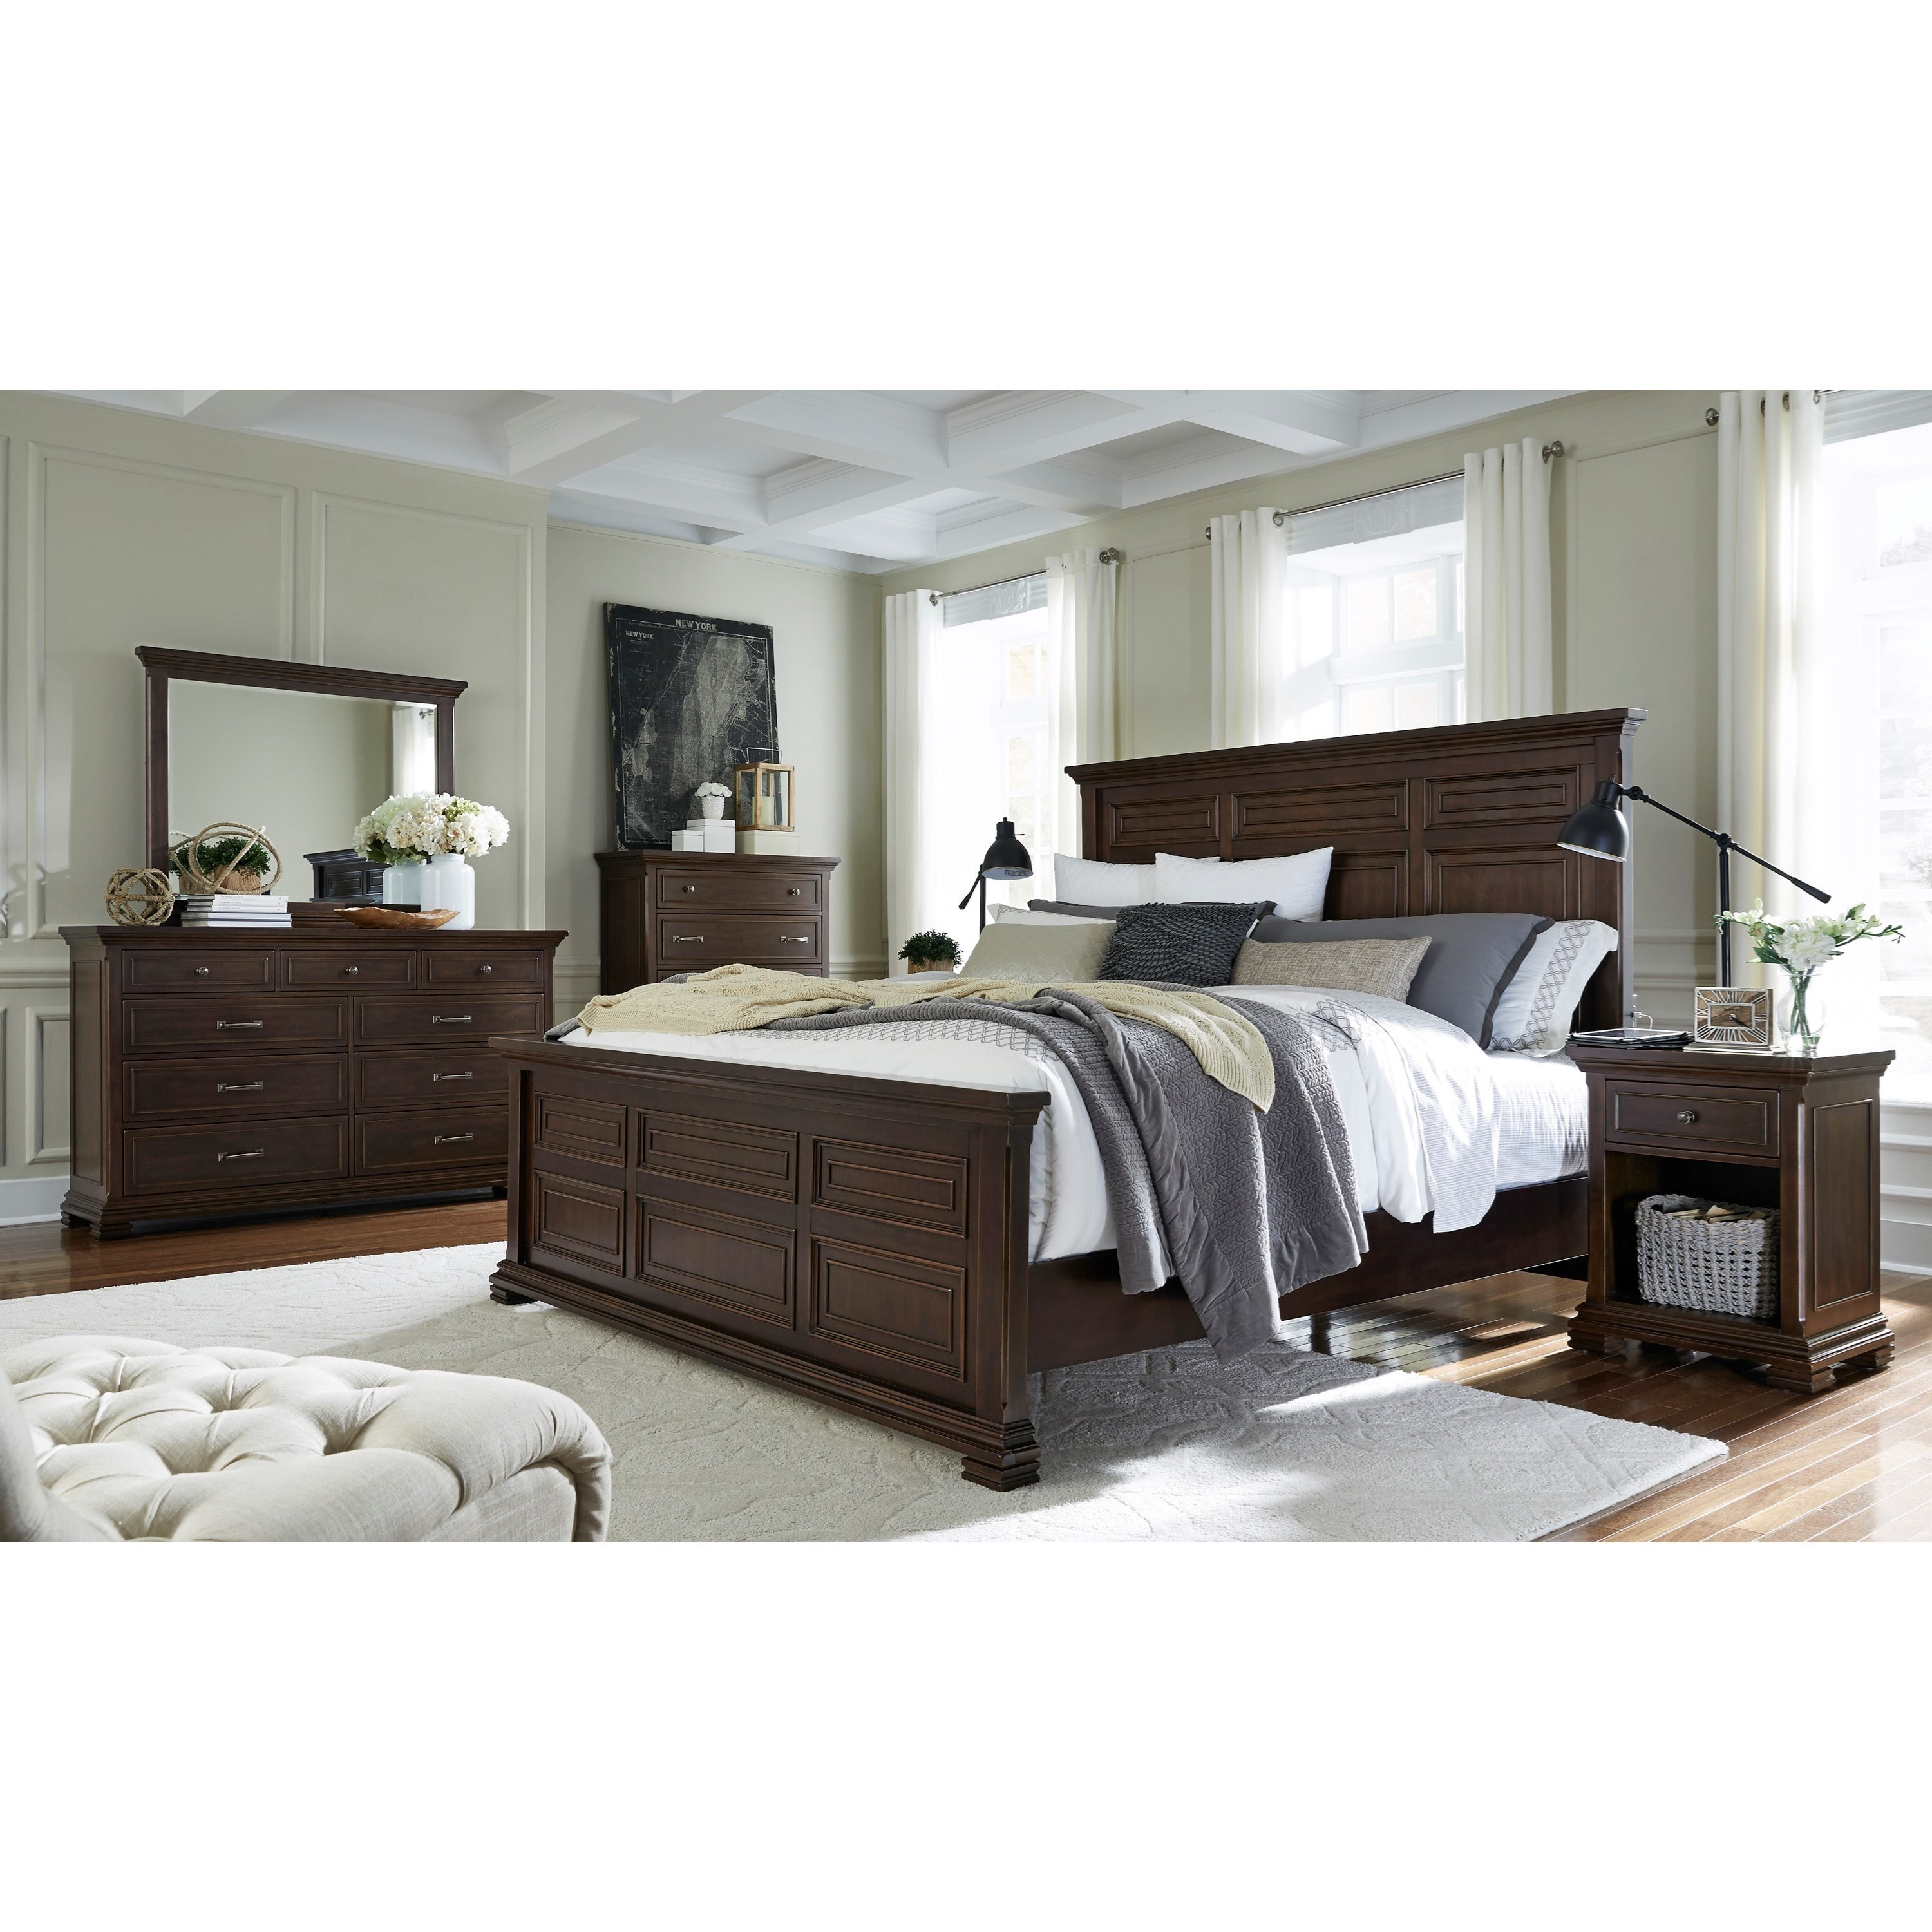 Aspenhome weston queen bedroom group dunk bright for Bedroom furniture groups